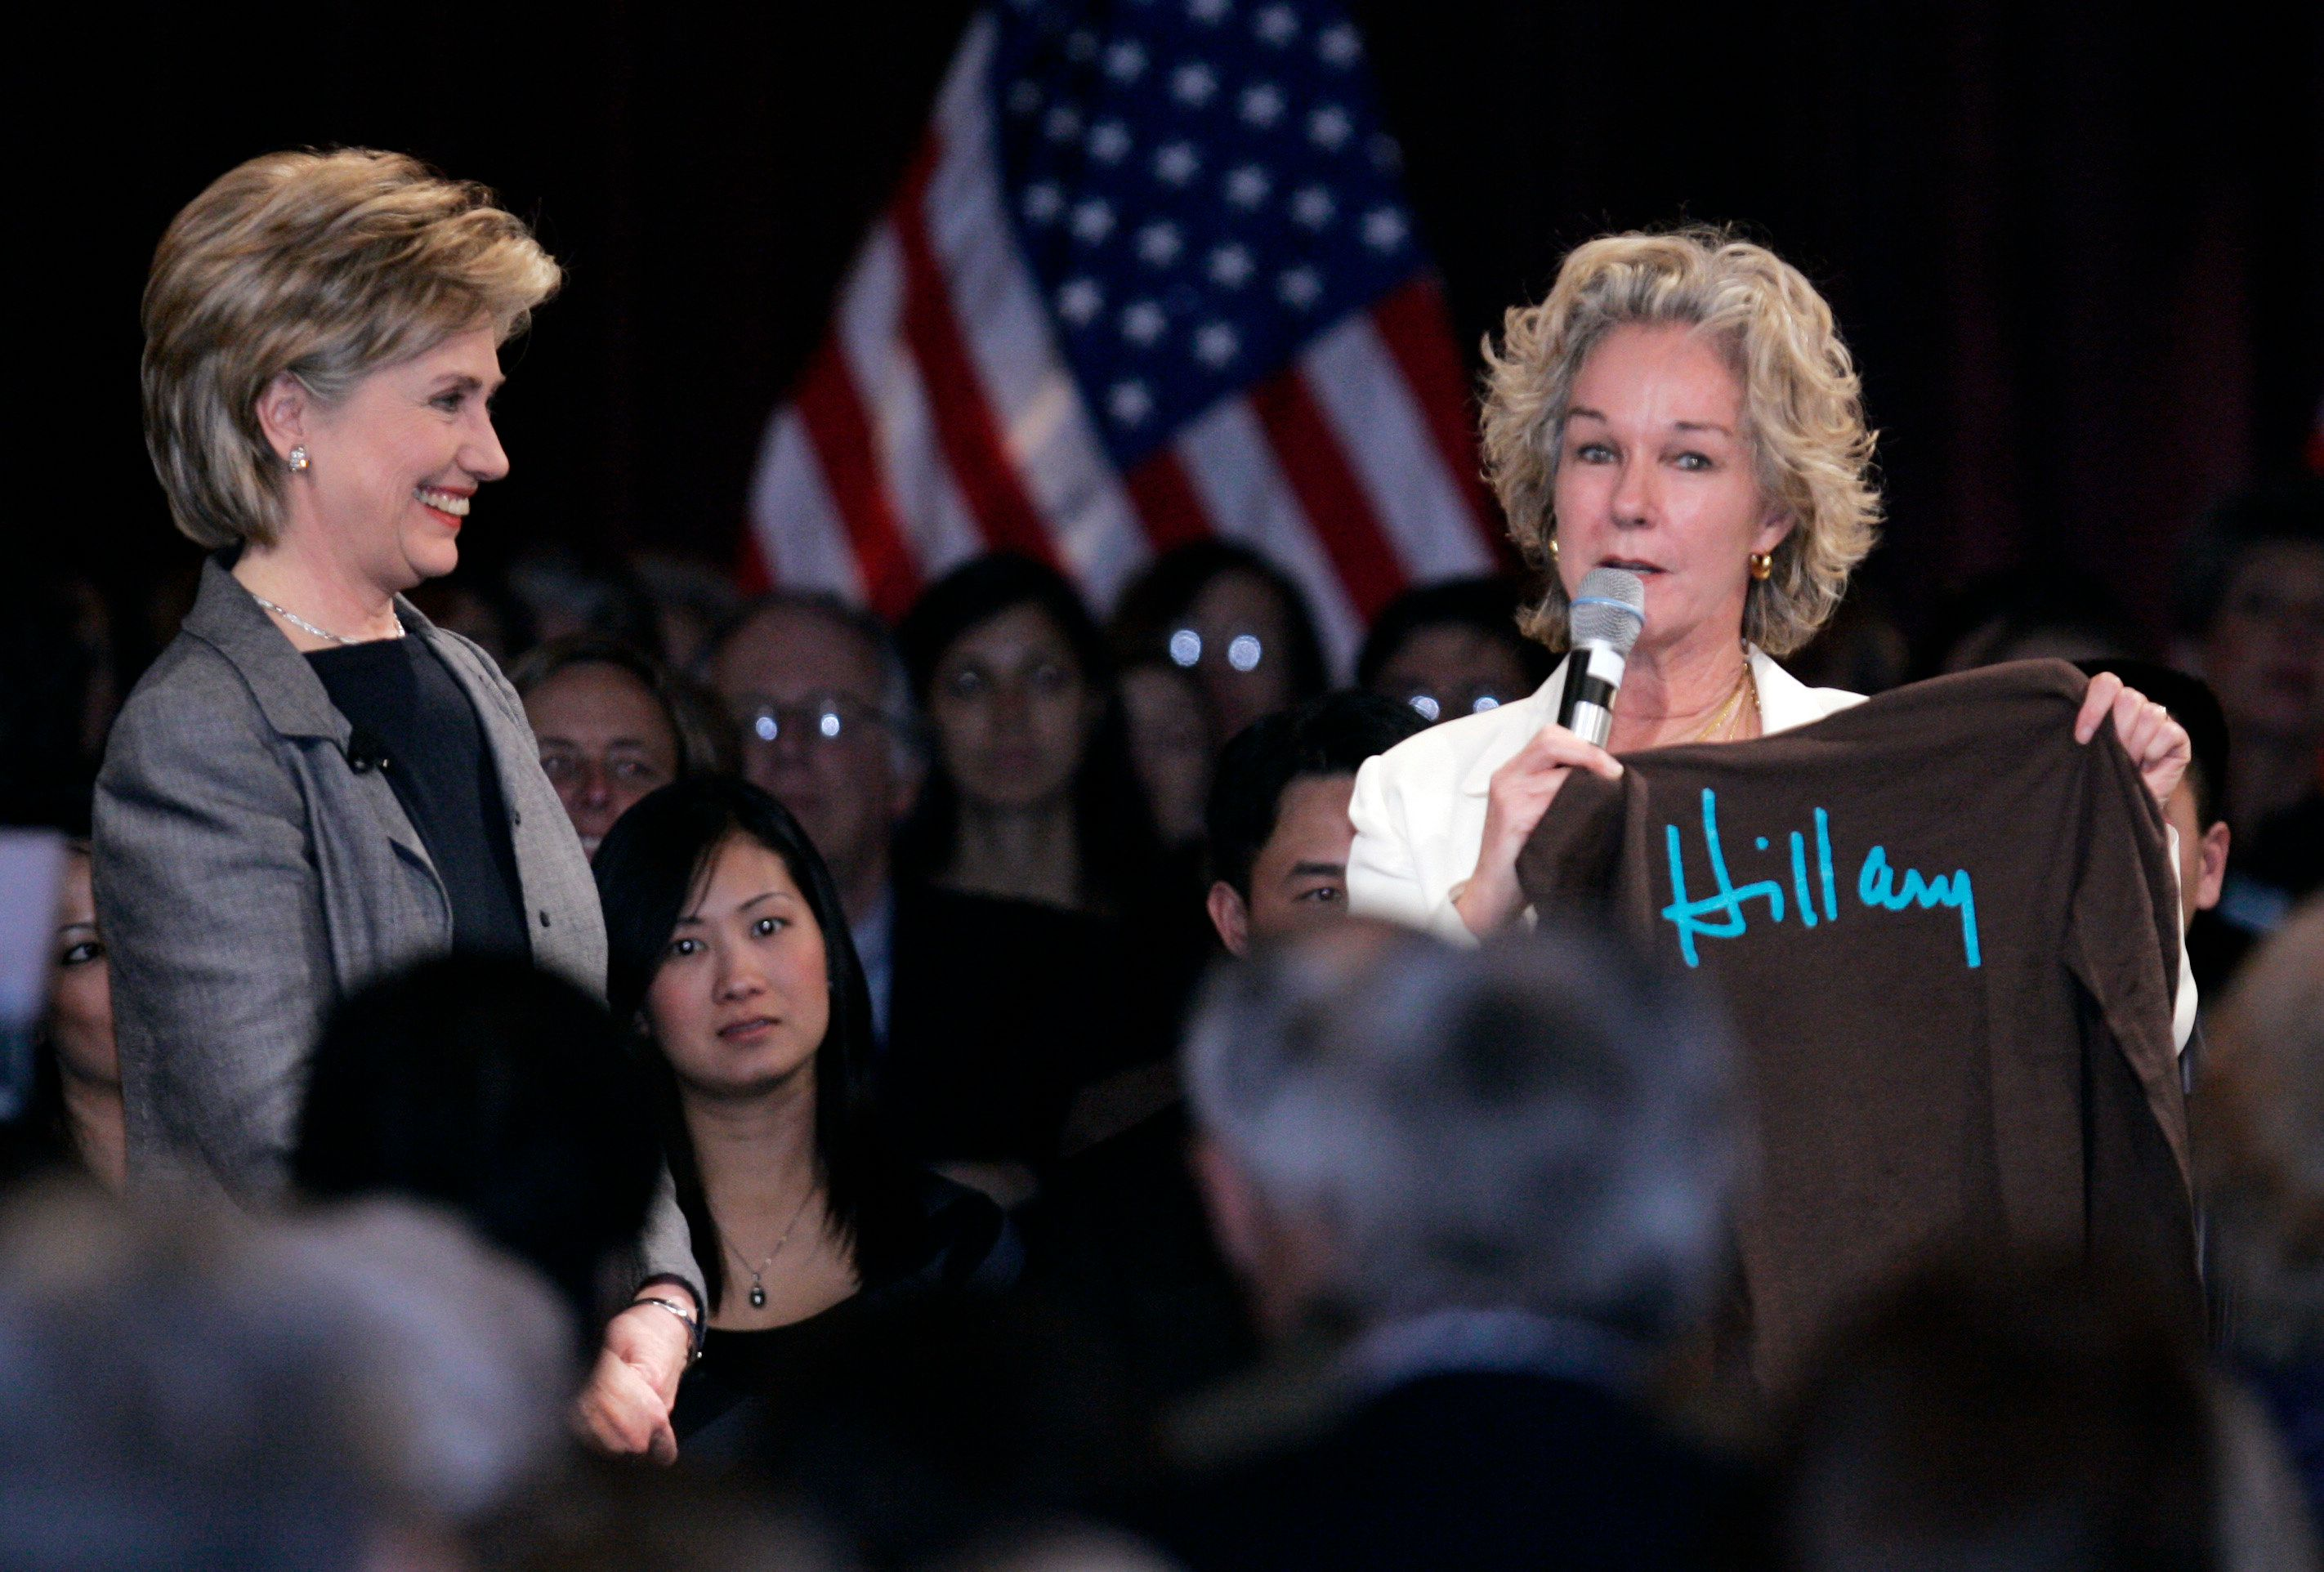 Top Democratic donor Susie Tompkins Buell of California (right), has decided to support Sen. Kamala Harris (D-Calif.) in the